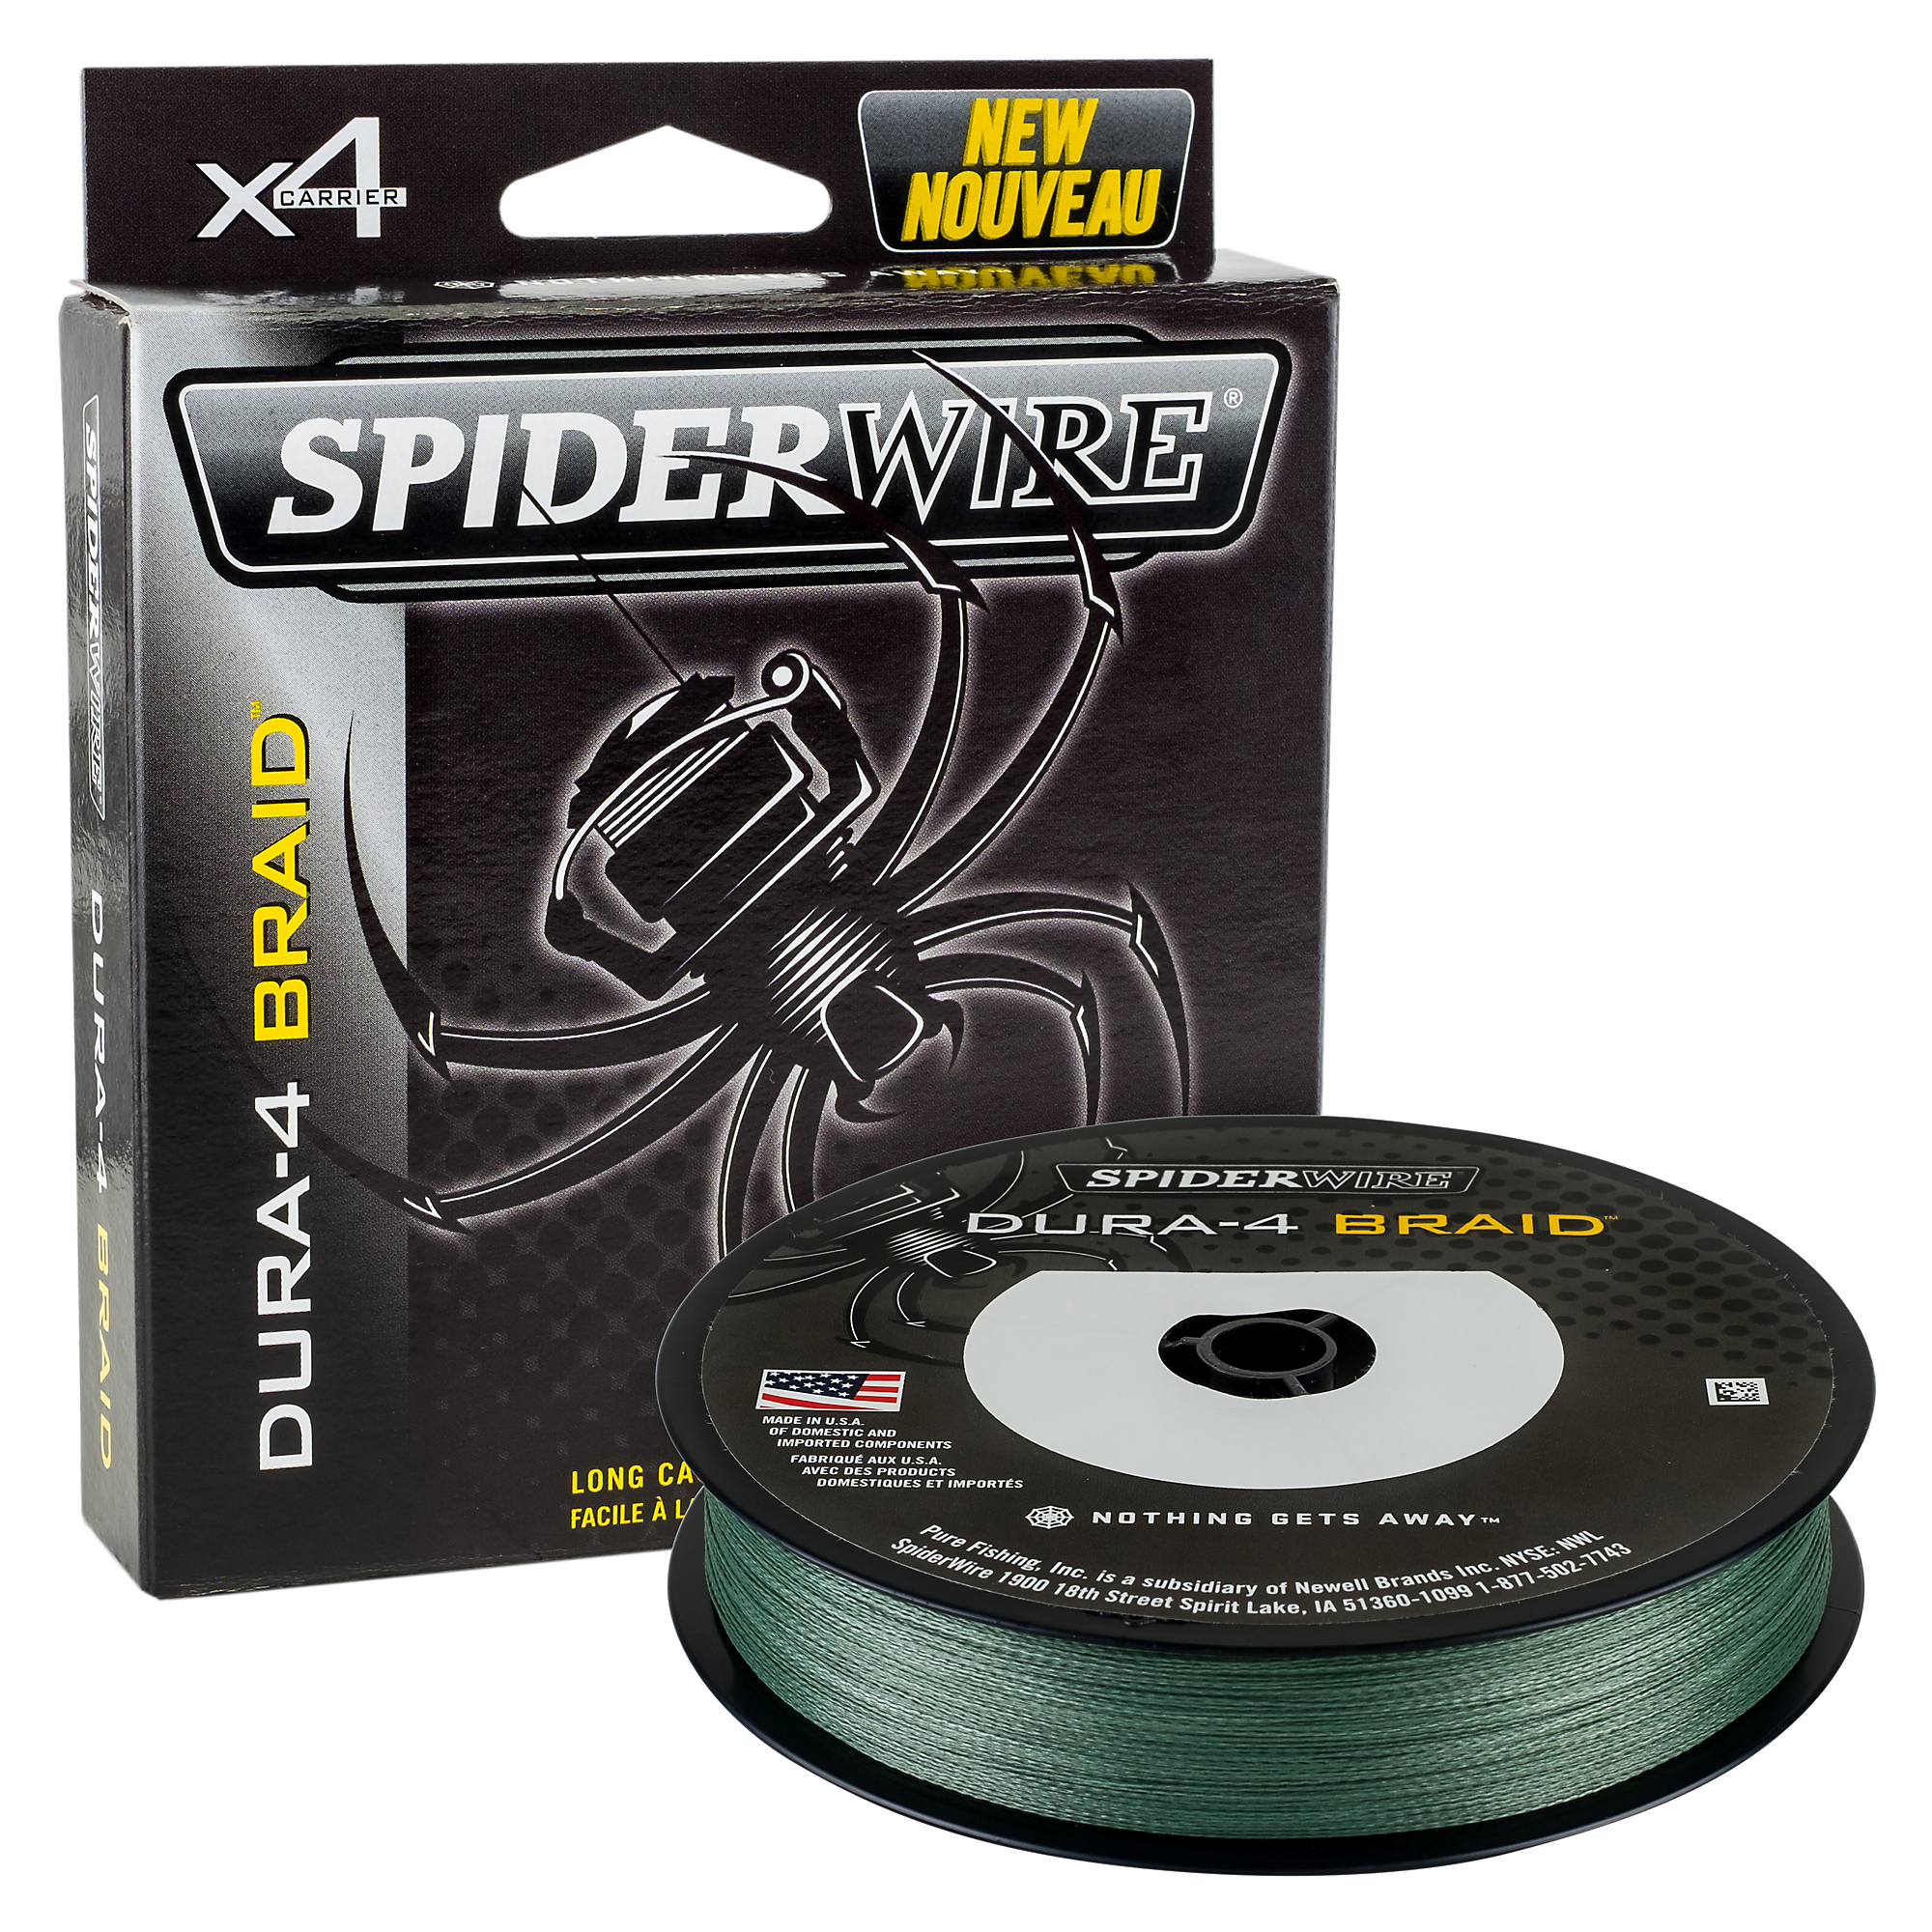 SpiderWire® Dura4 Braid 150m